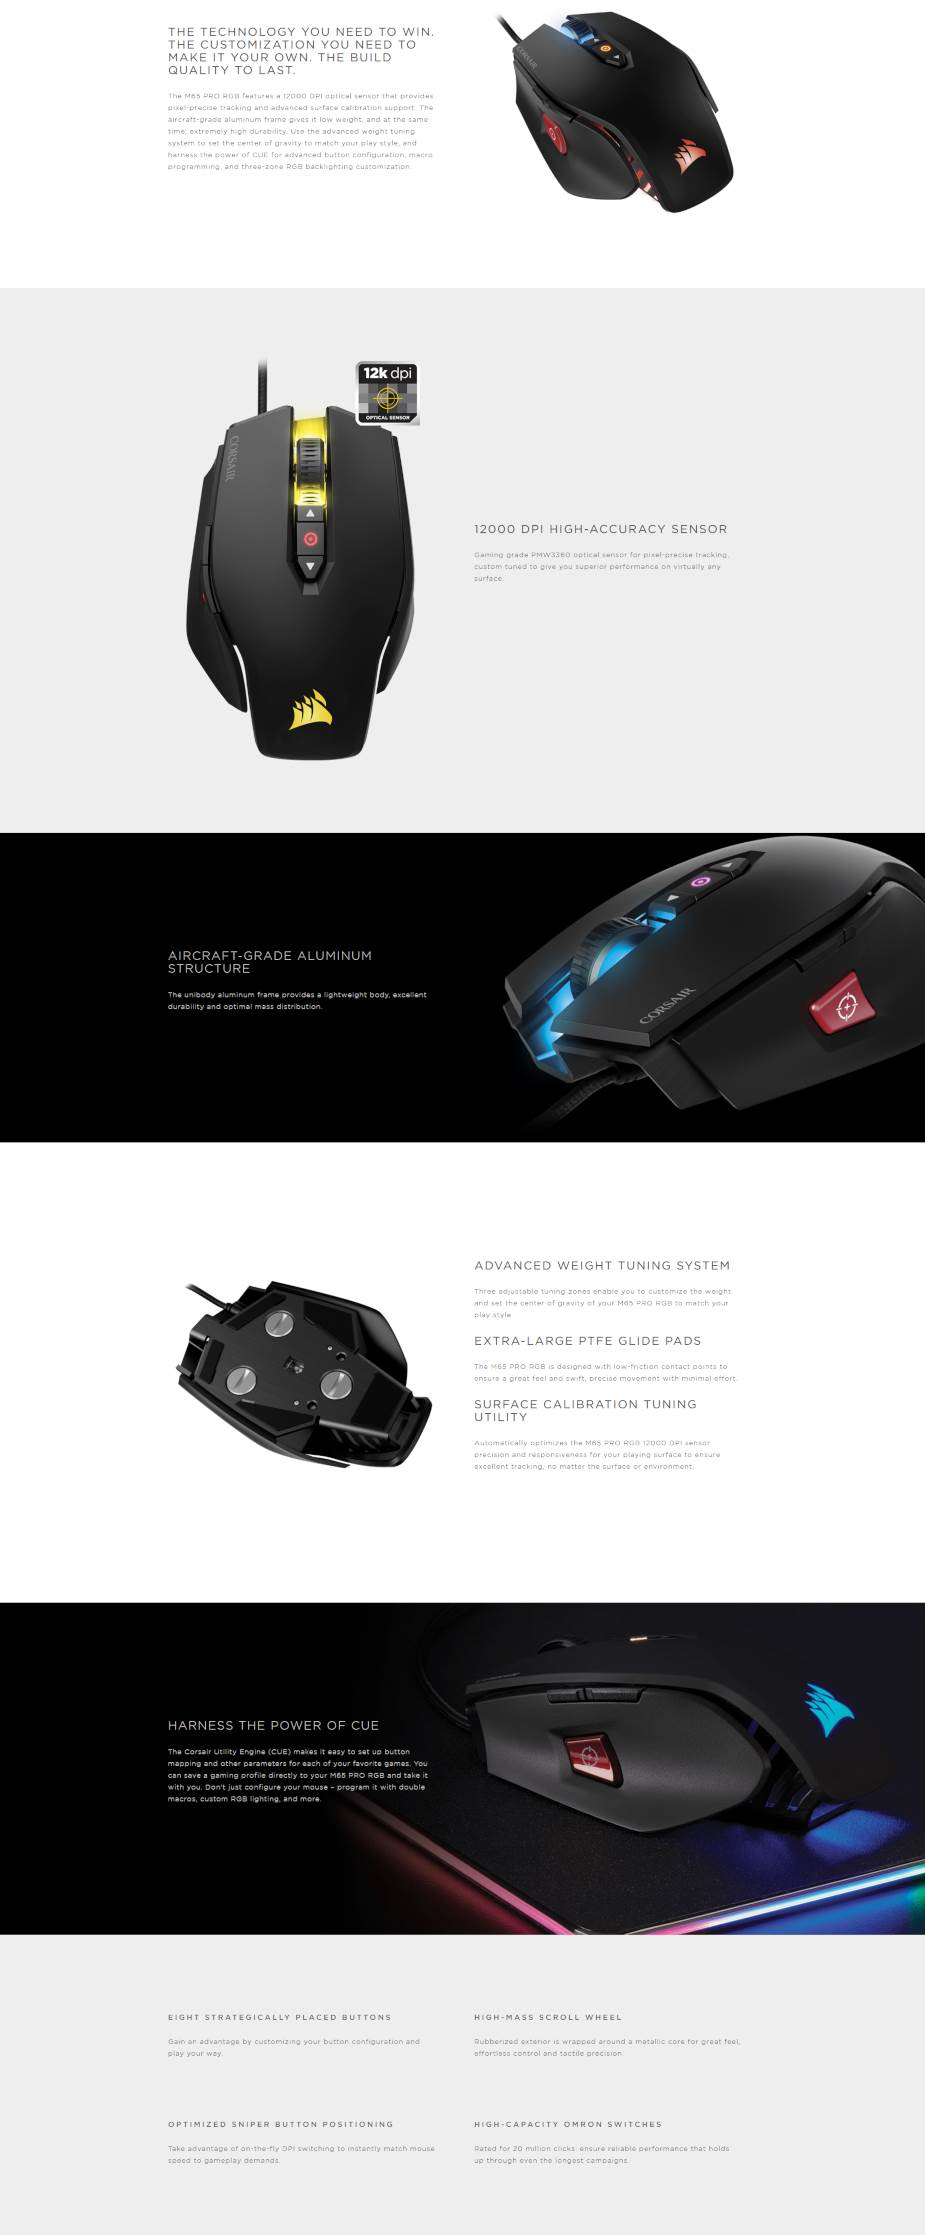 387563fe42b Corsair Gaming M65 Pro RGB FPS Optical Gaming Mouse - Black - Overview